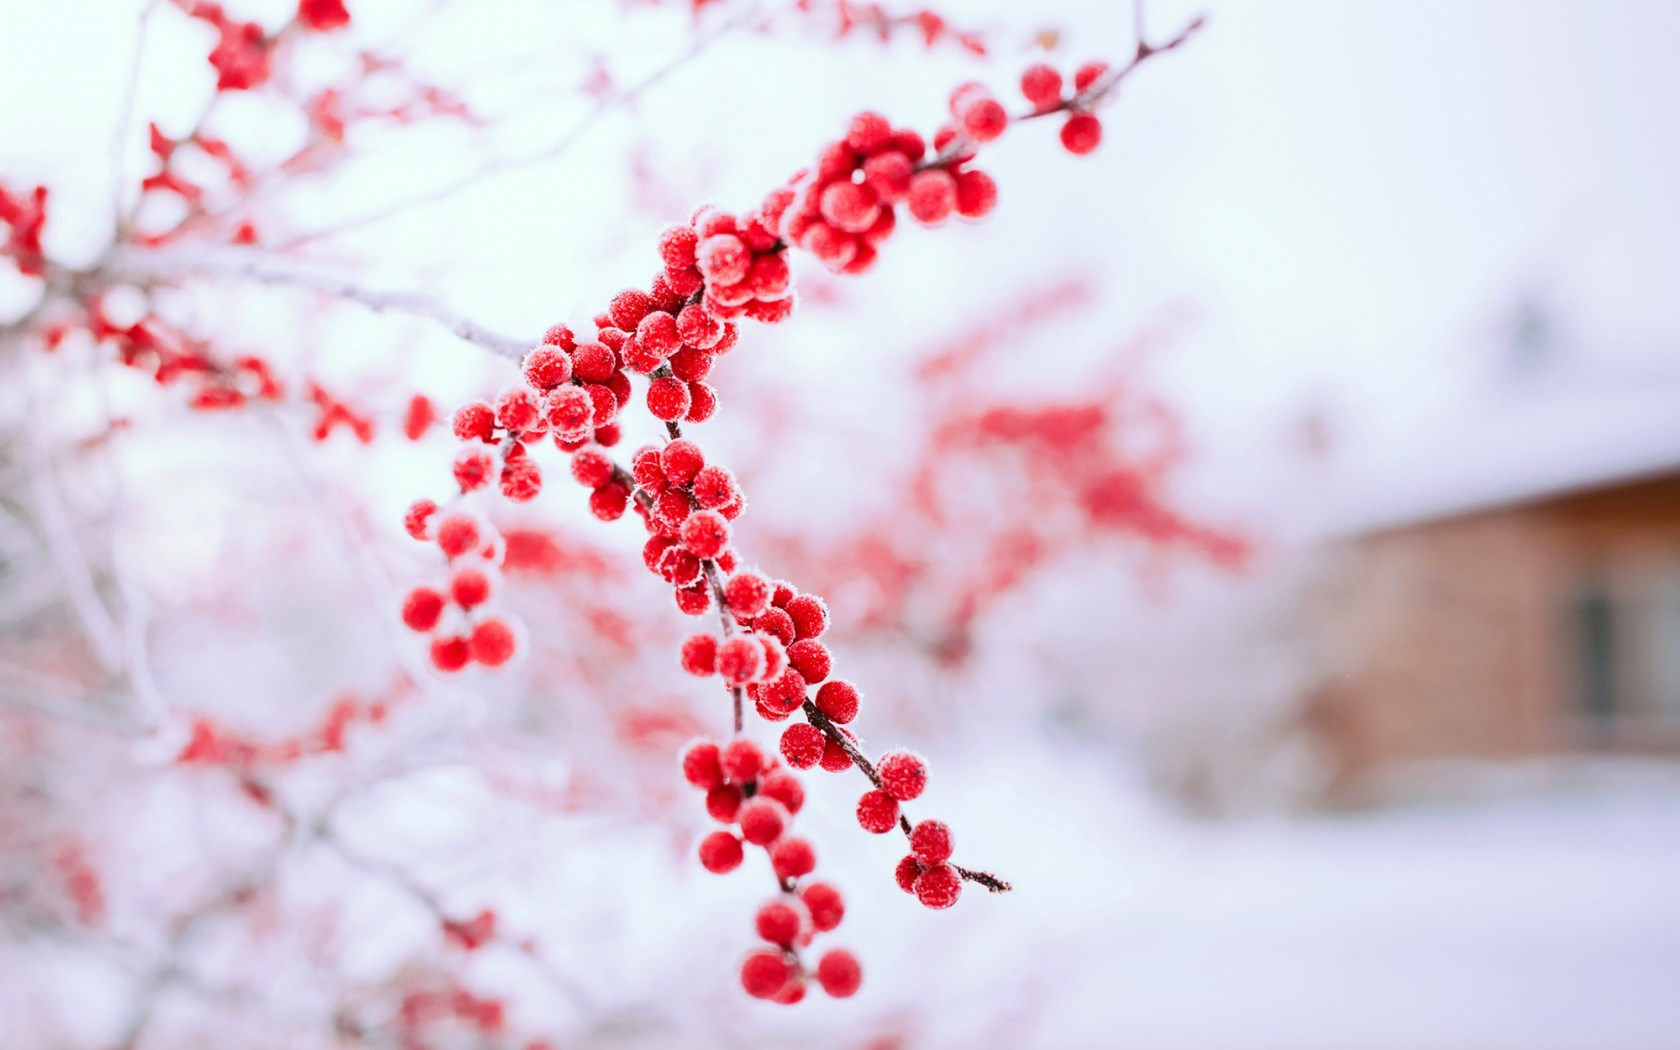 red berries wallpaper